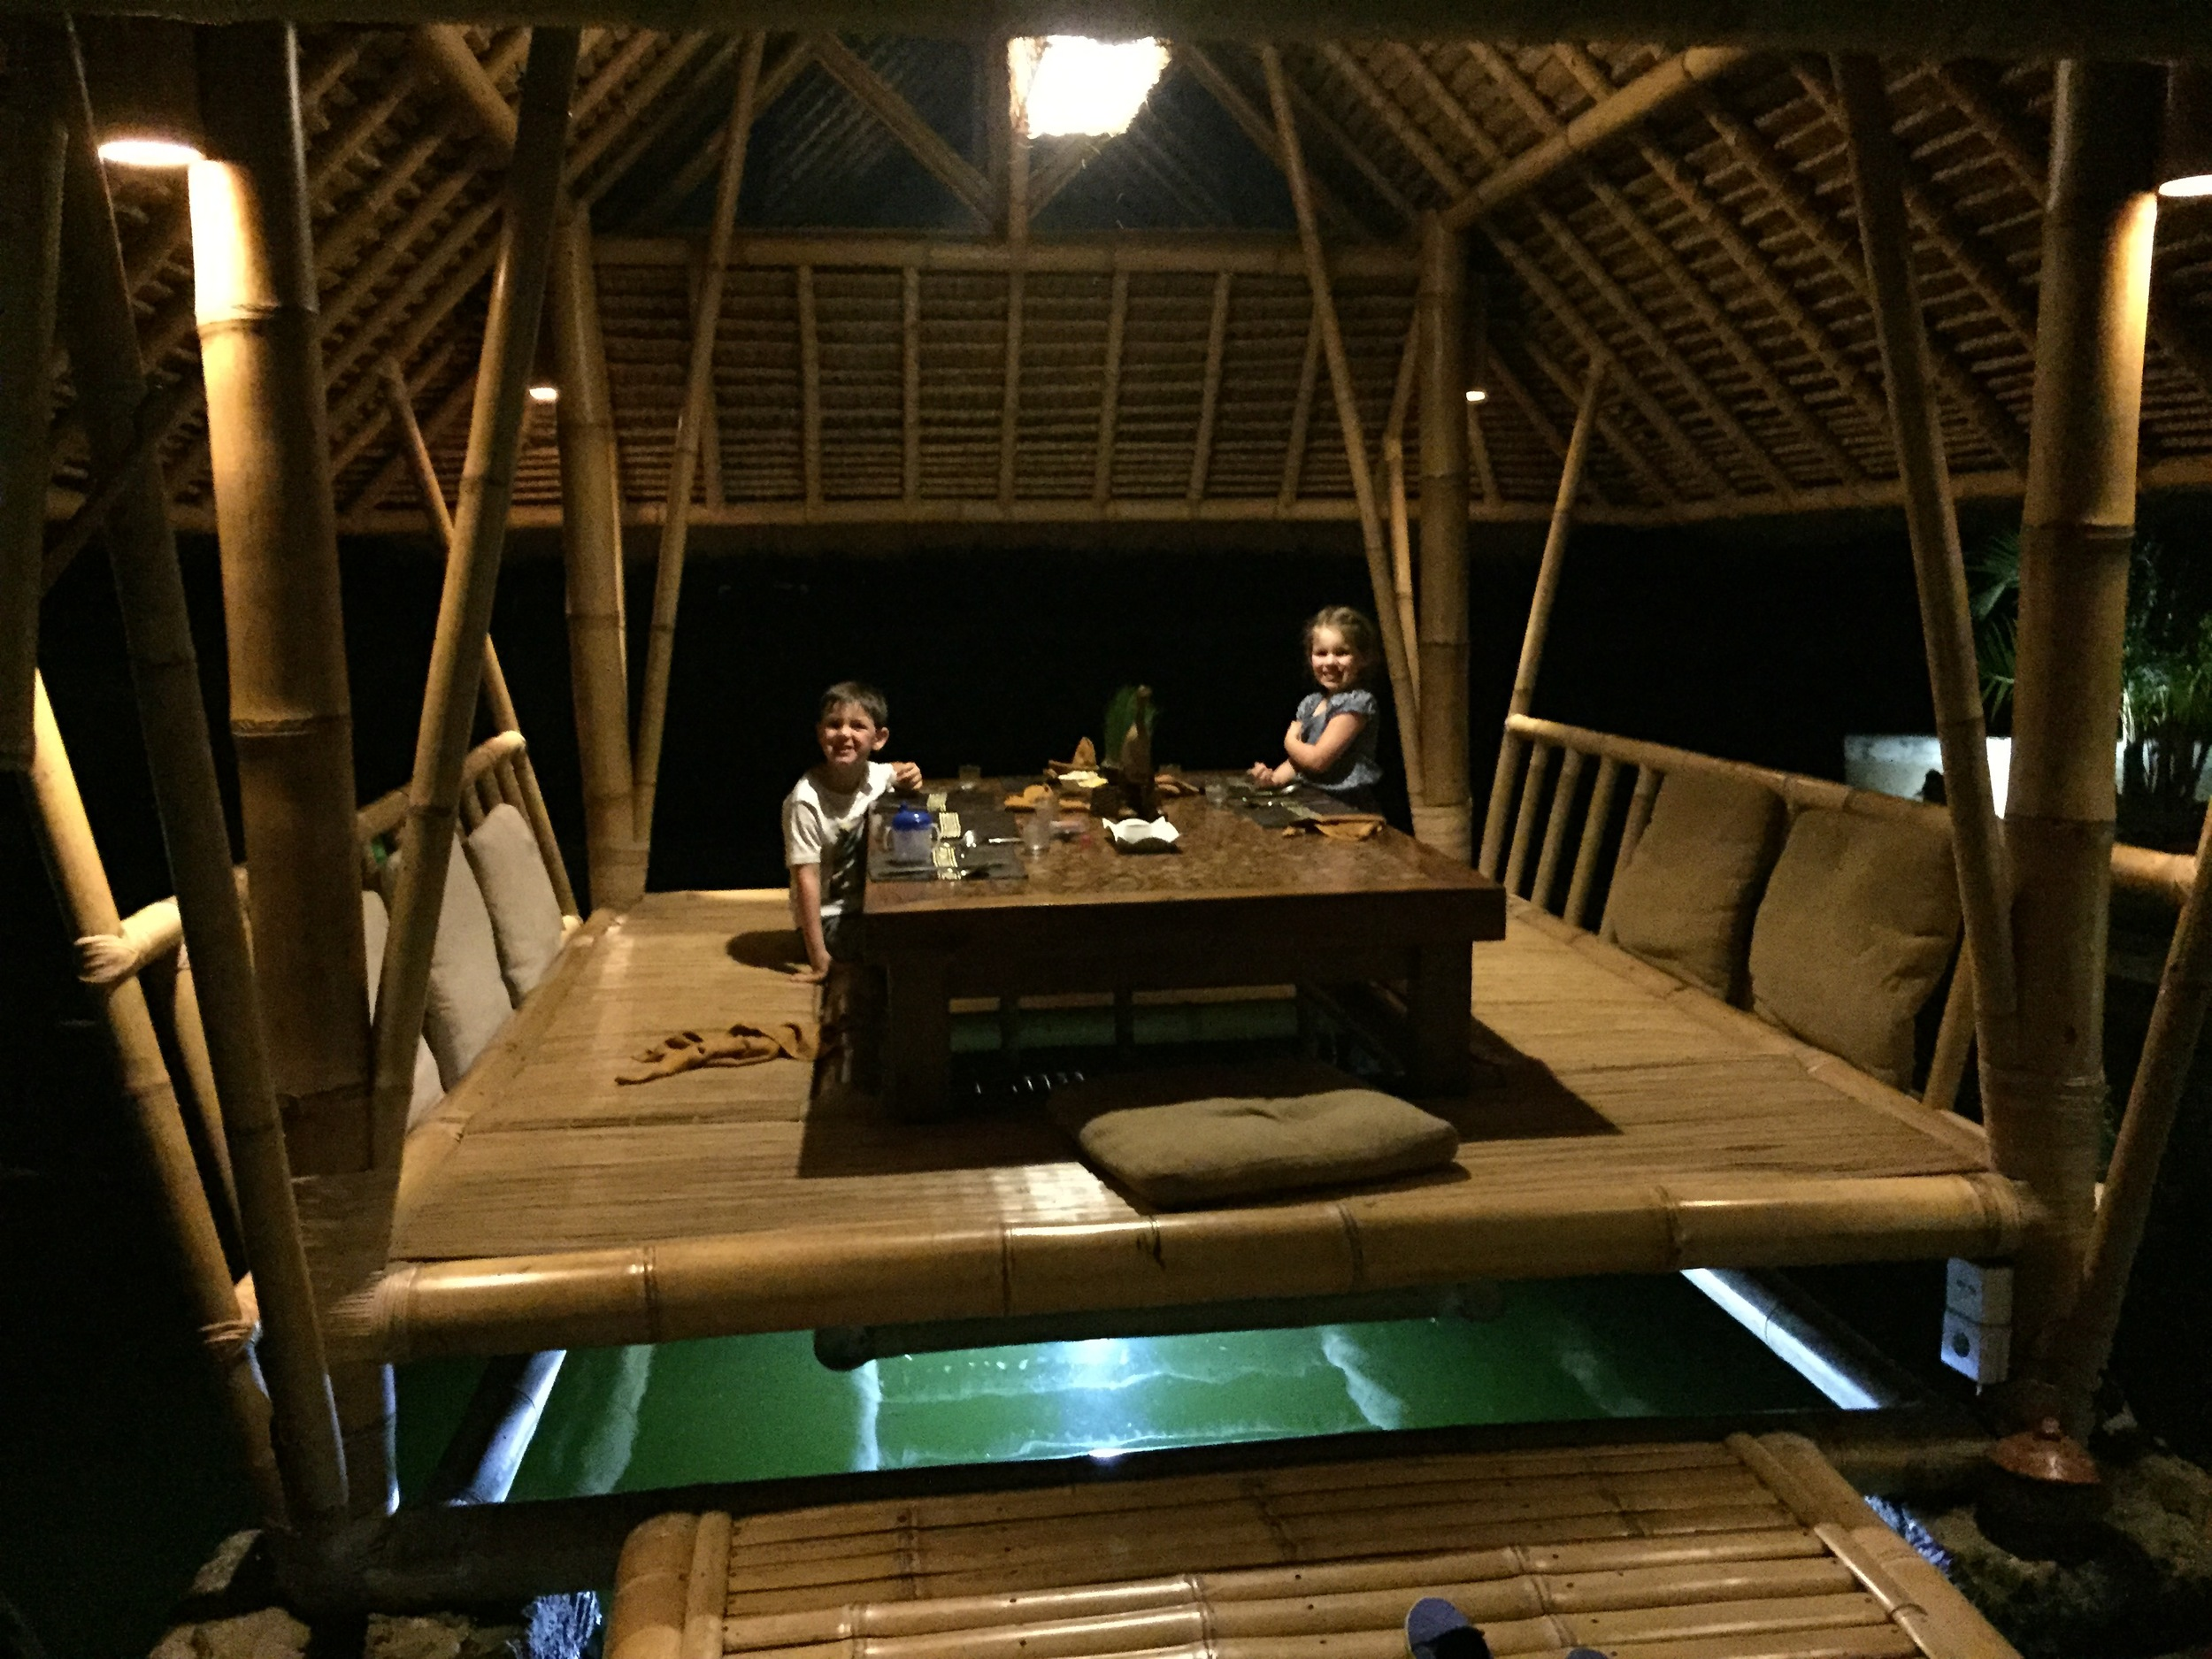 Dinner in a bamboo hut floating over a fish pond, Ubud